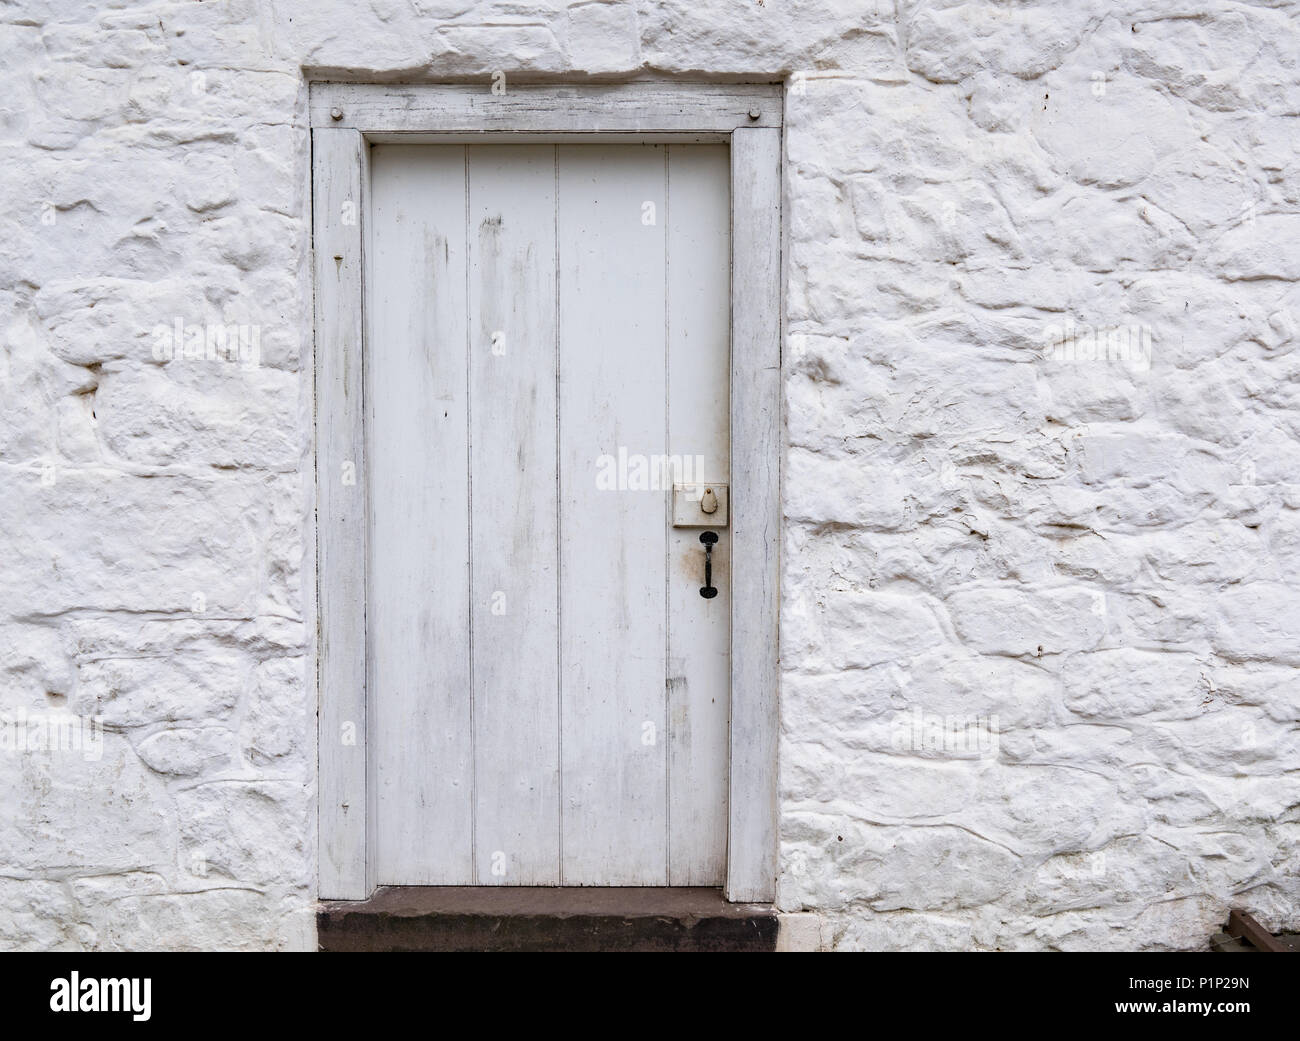 Old White weathered wooden door on a whitewashed stone building